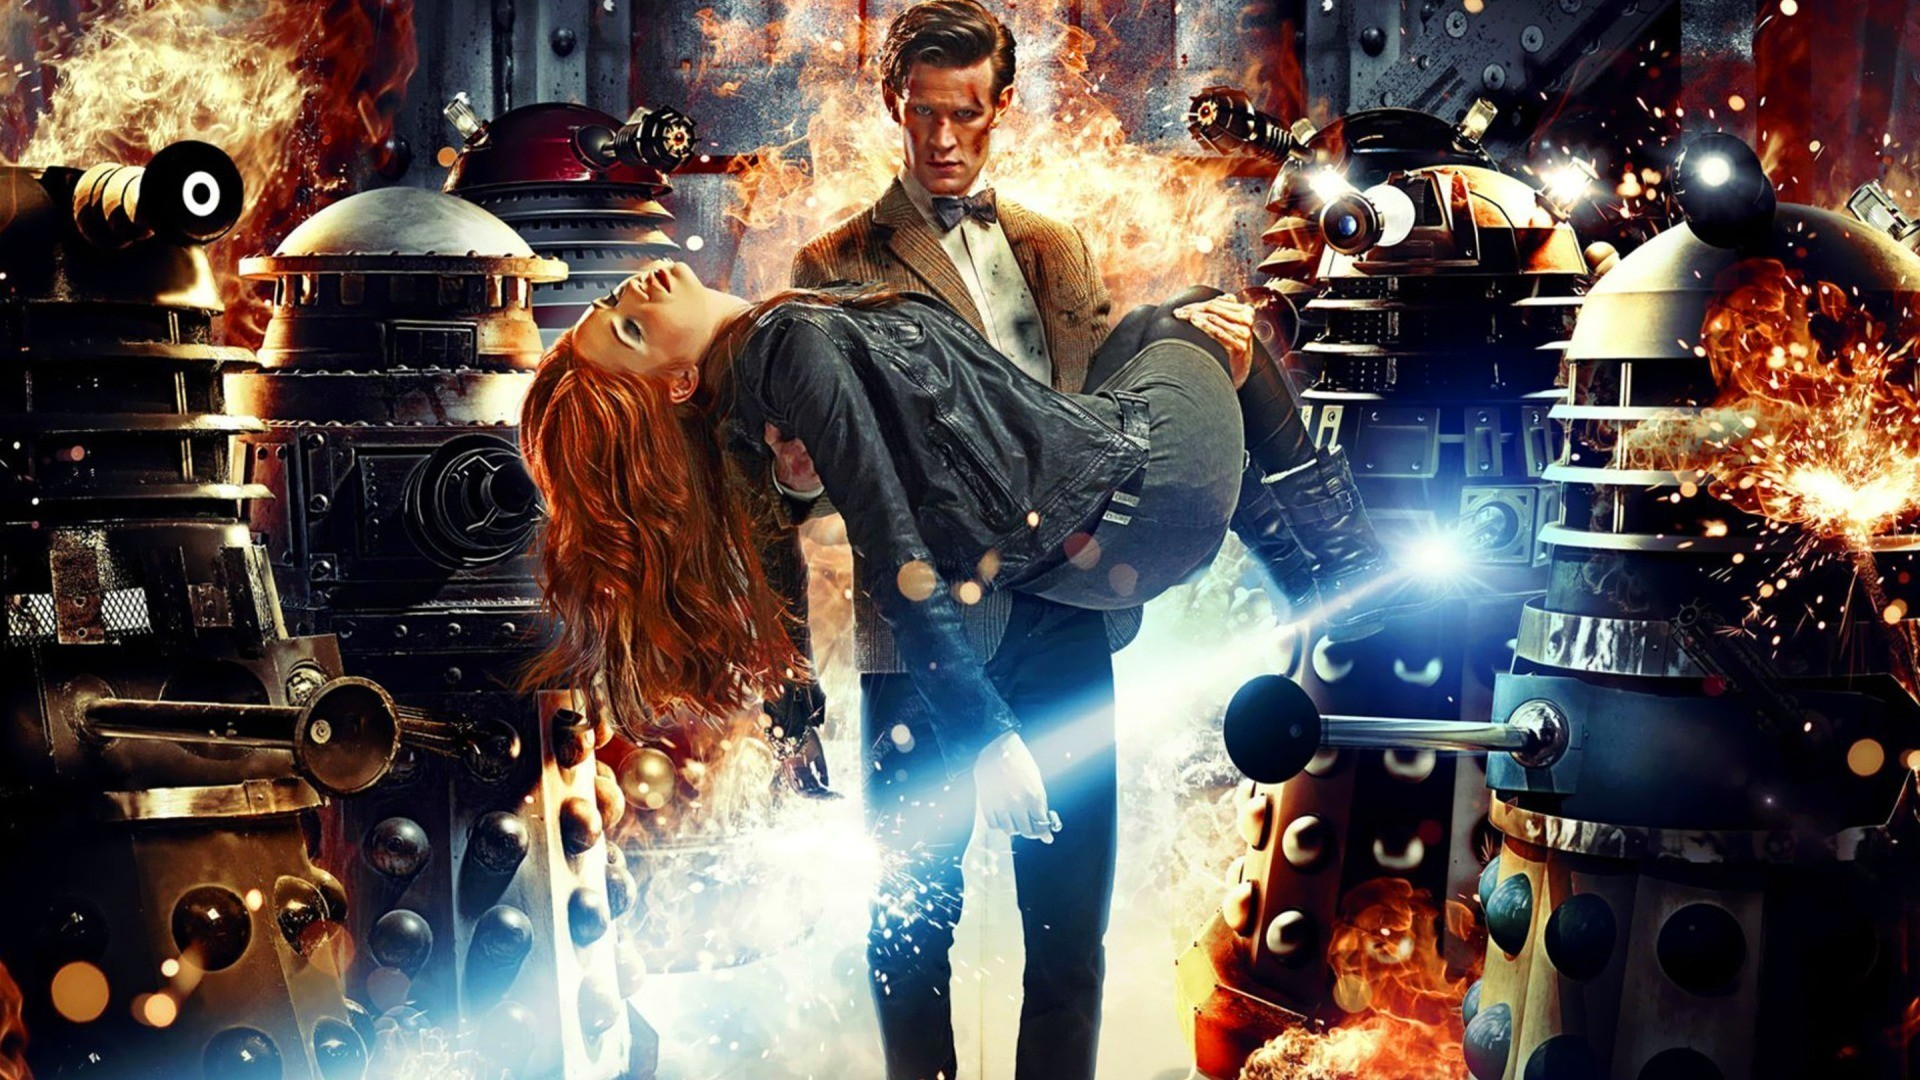 1920x1080 #Amy Pond, #Daleks, #Eleventh Doctor, #Doctor Who, #Karen Gillan, #fantasy  art, #Matt Smith, wallpaper